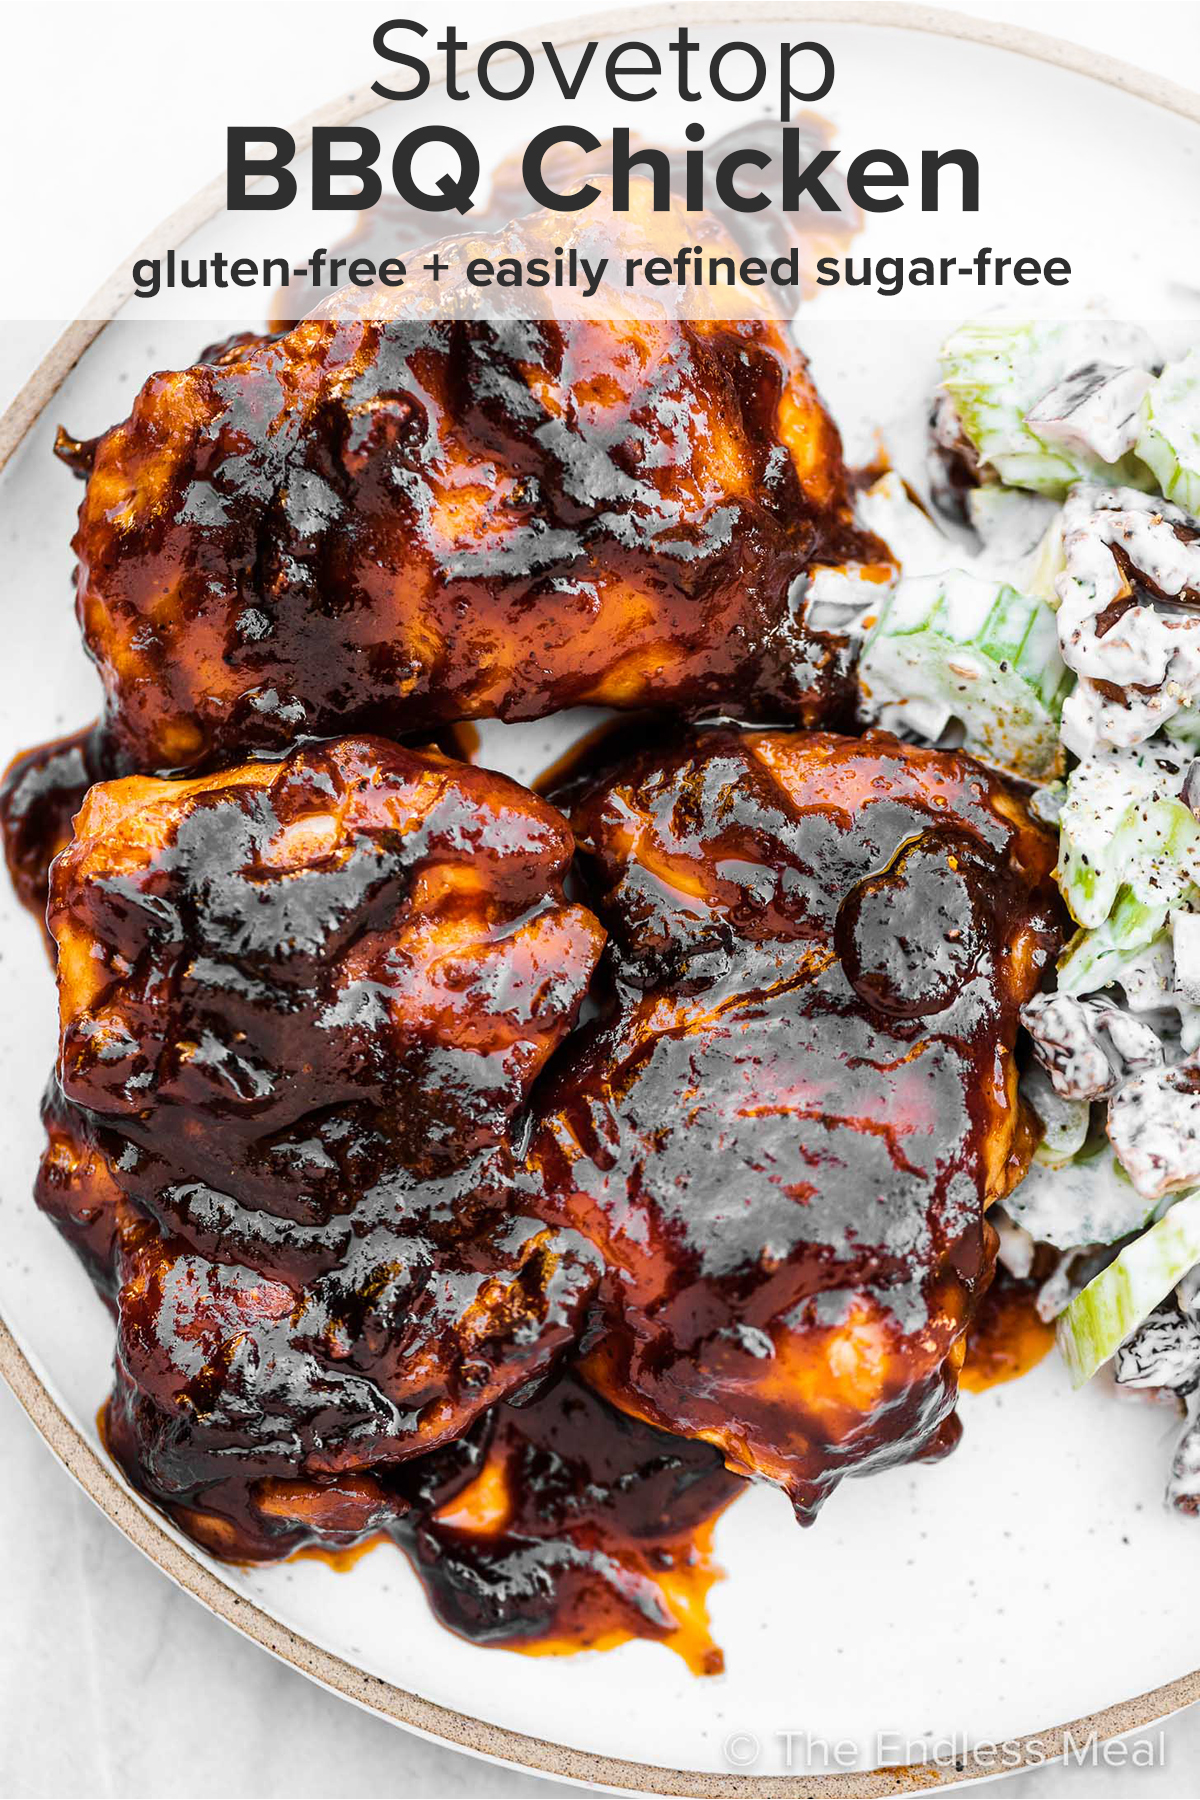 Stovetop BBQ chicken on a plate with celery salad and the recipe title on top of the picture.